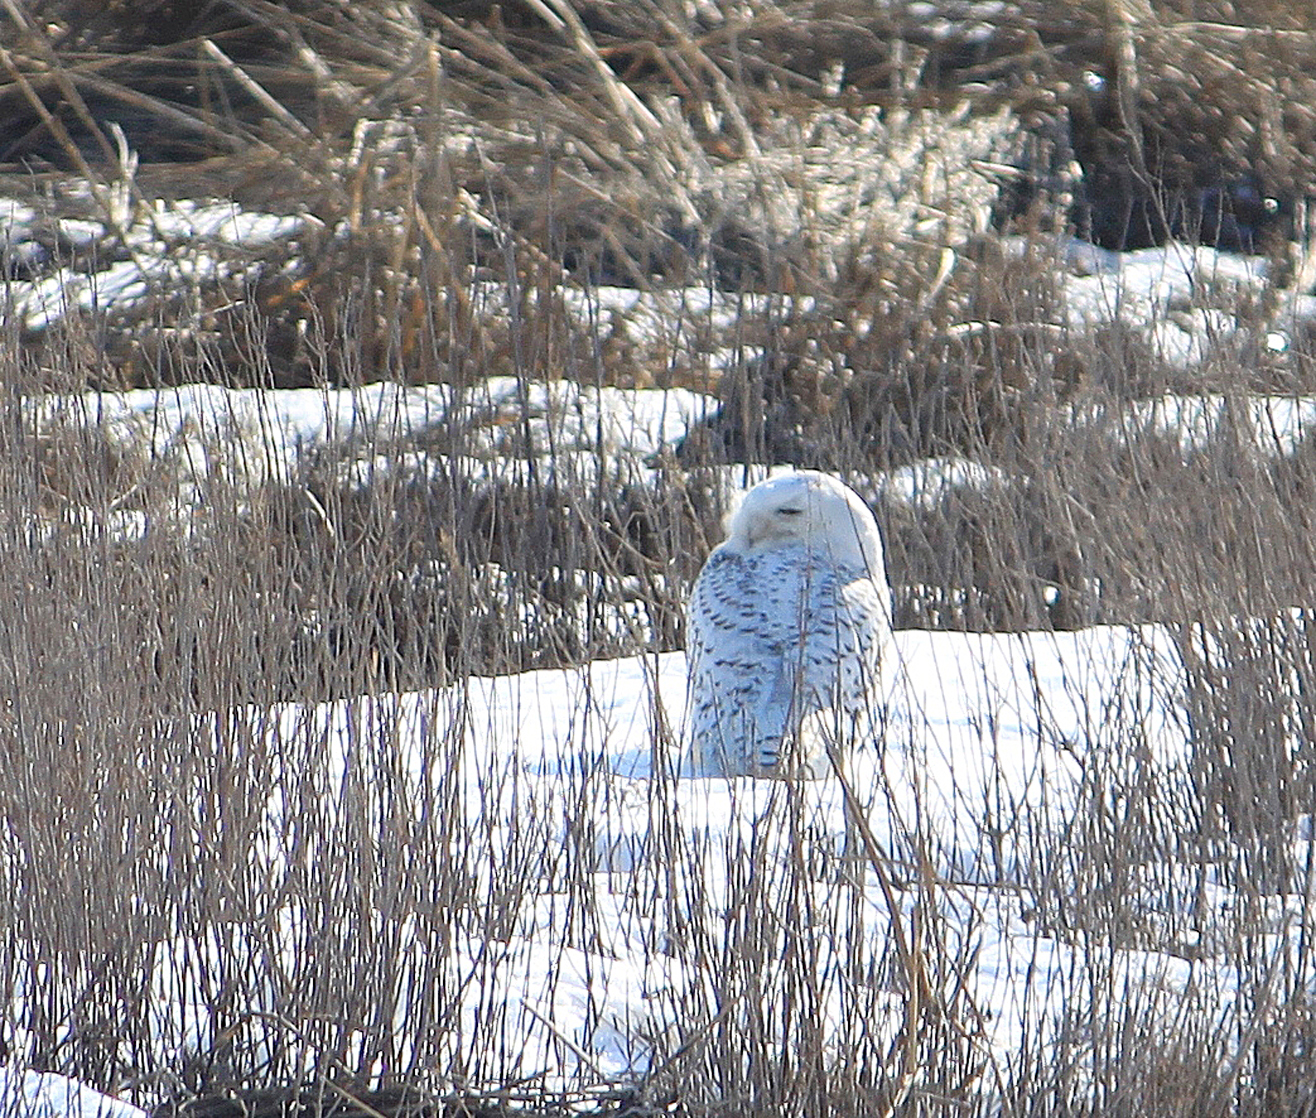 Rich Jenkins got this shot of a Snowy Owl at Silver Sands State Park, Milford, in late February 2014.